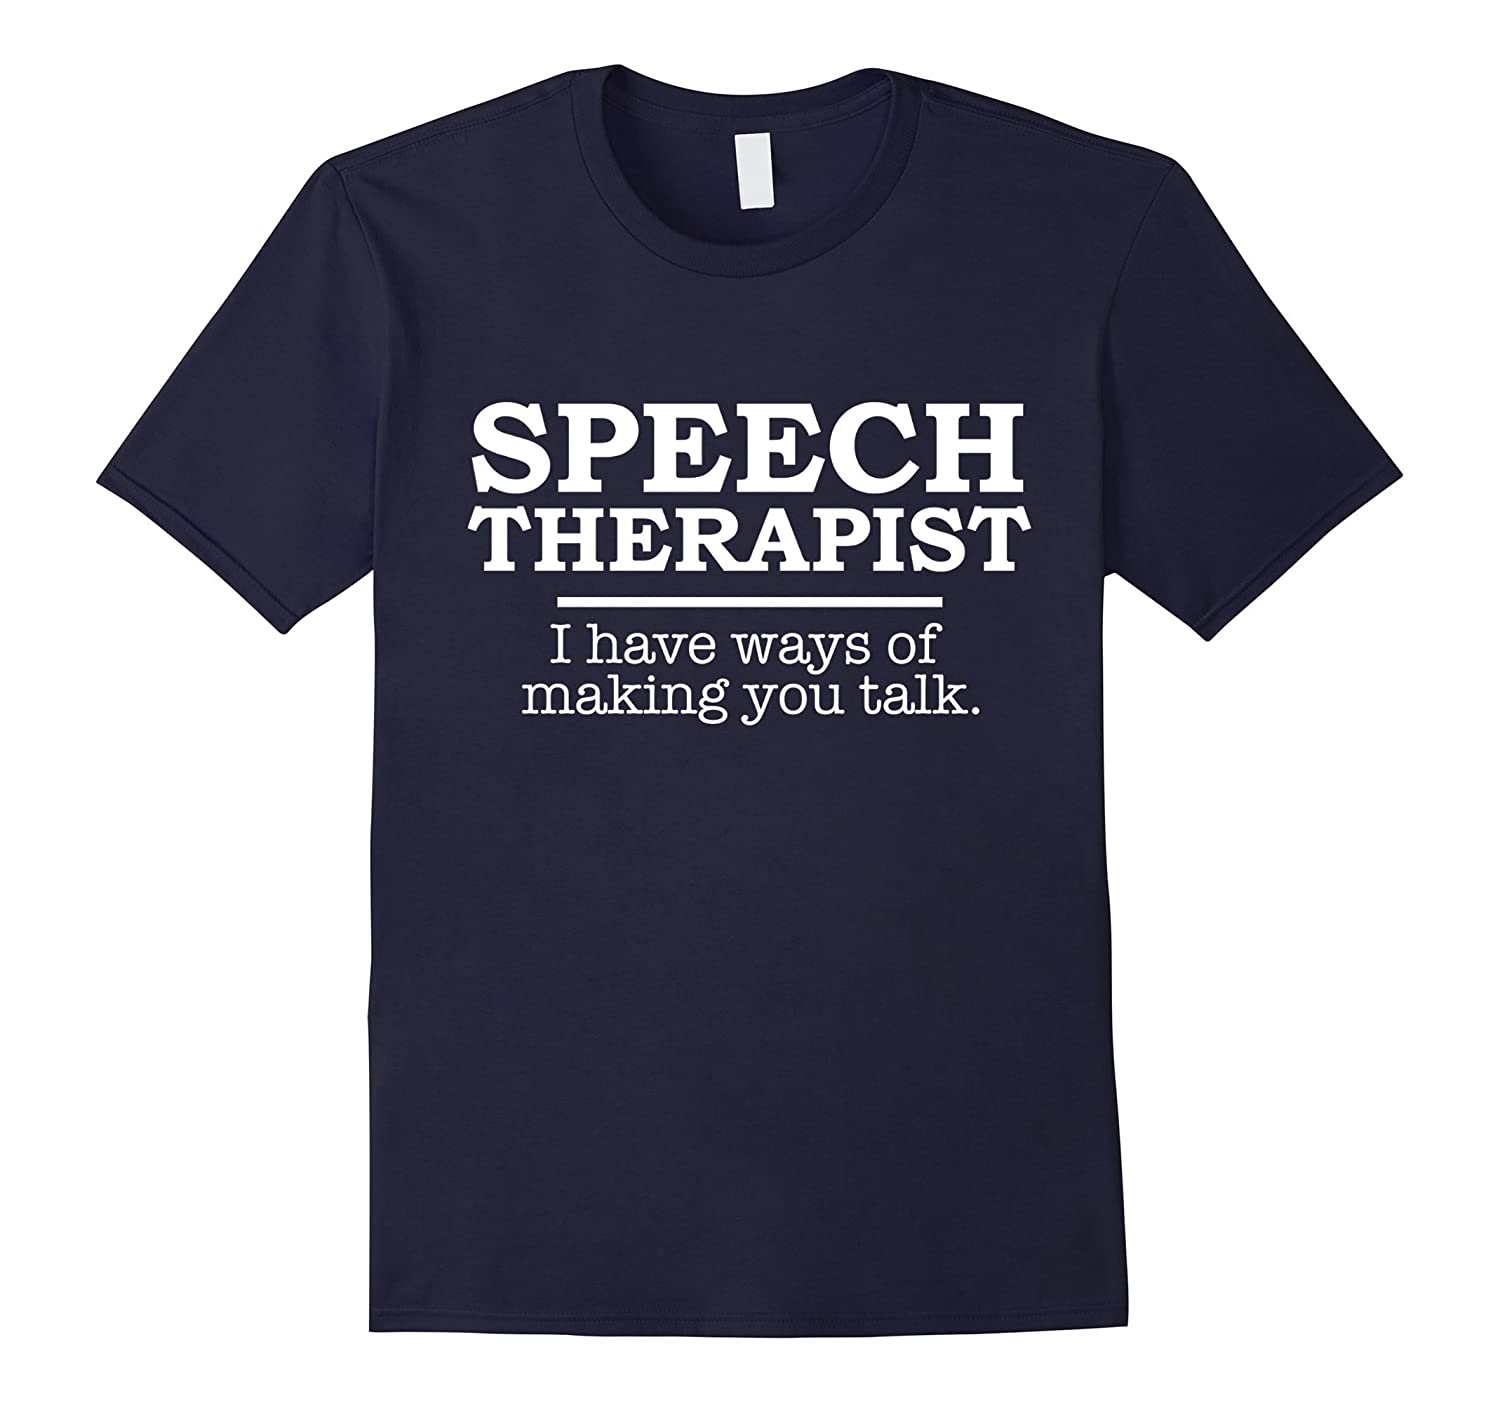 Funny Speech Therapist TShirt I Have Ways of Making You Talk-BN